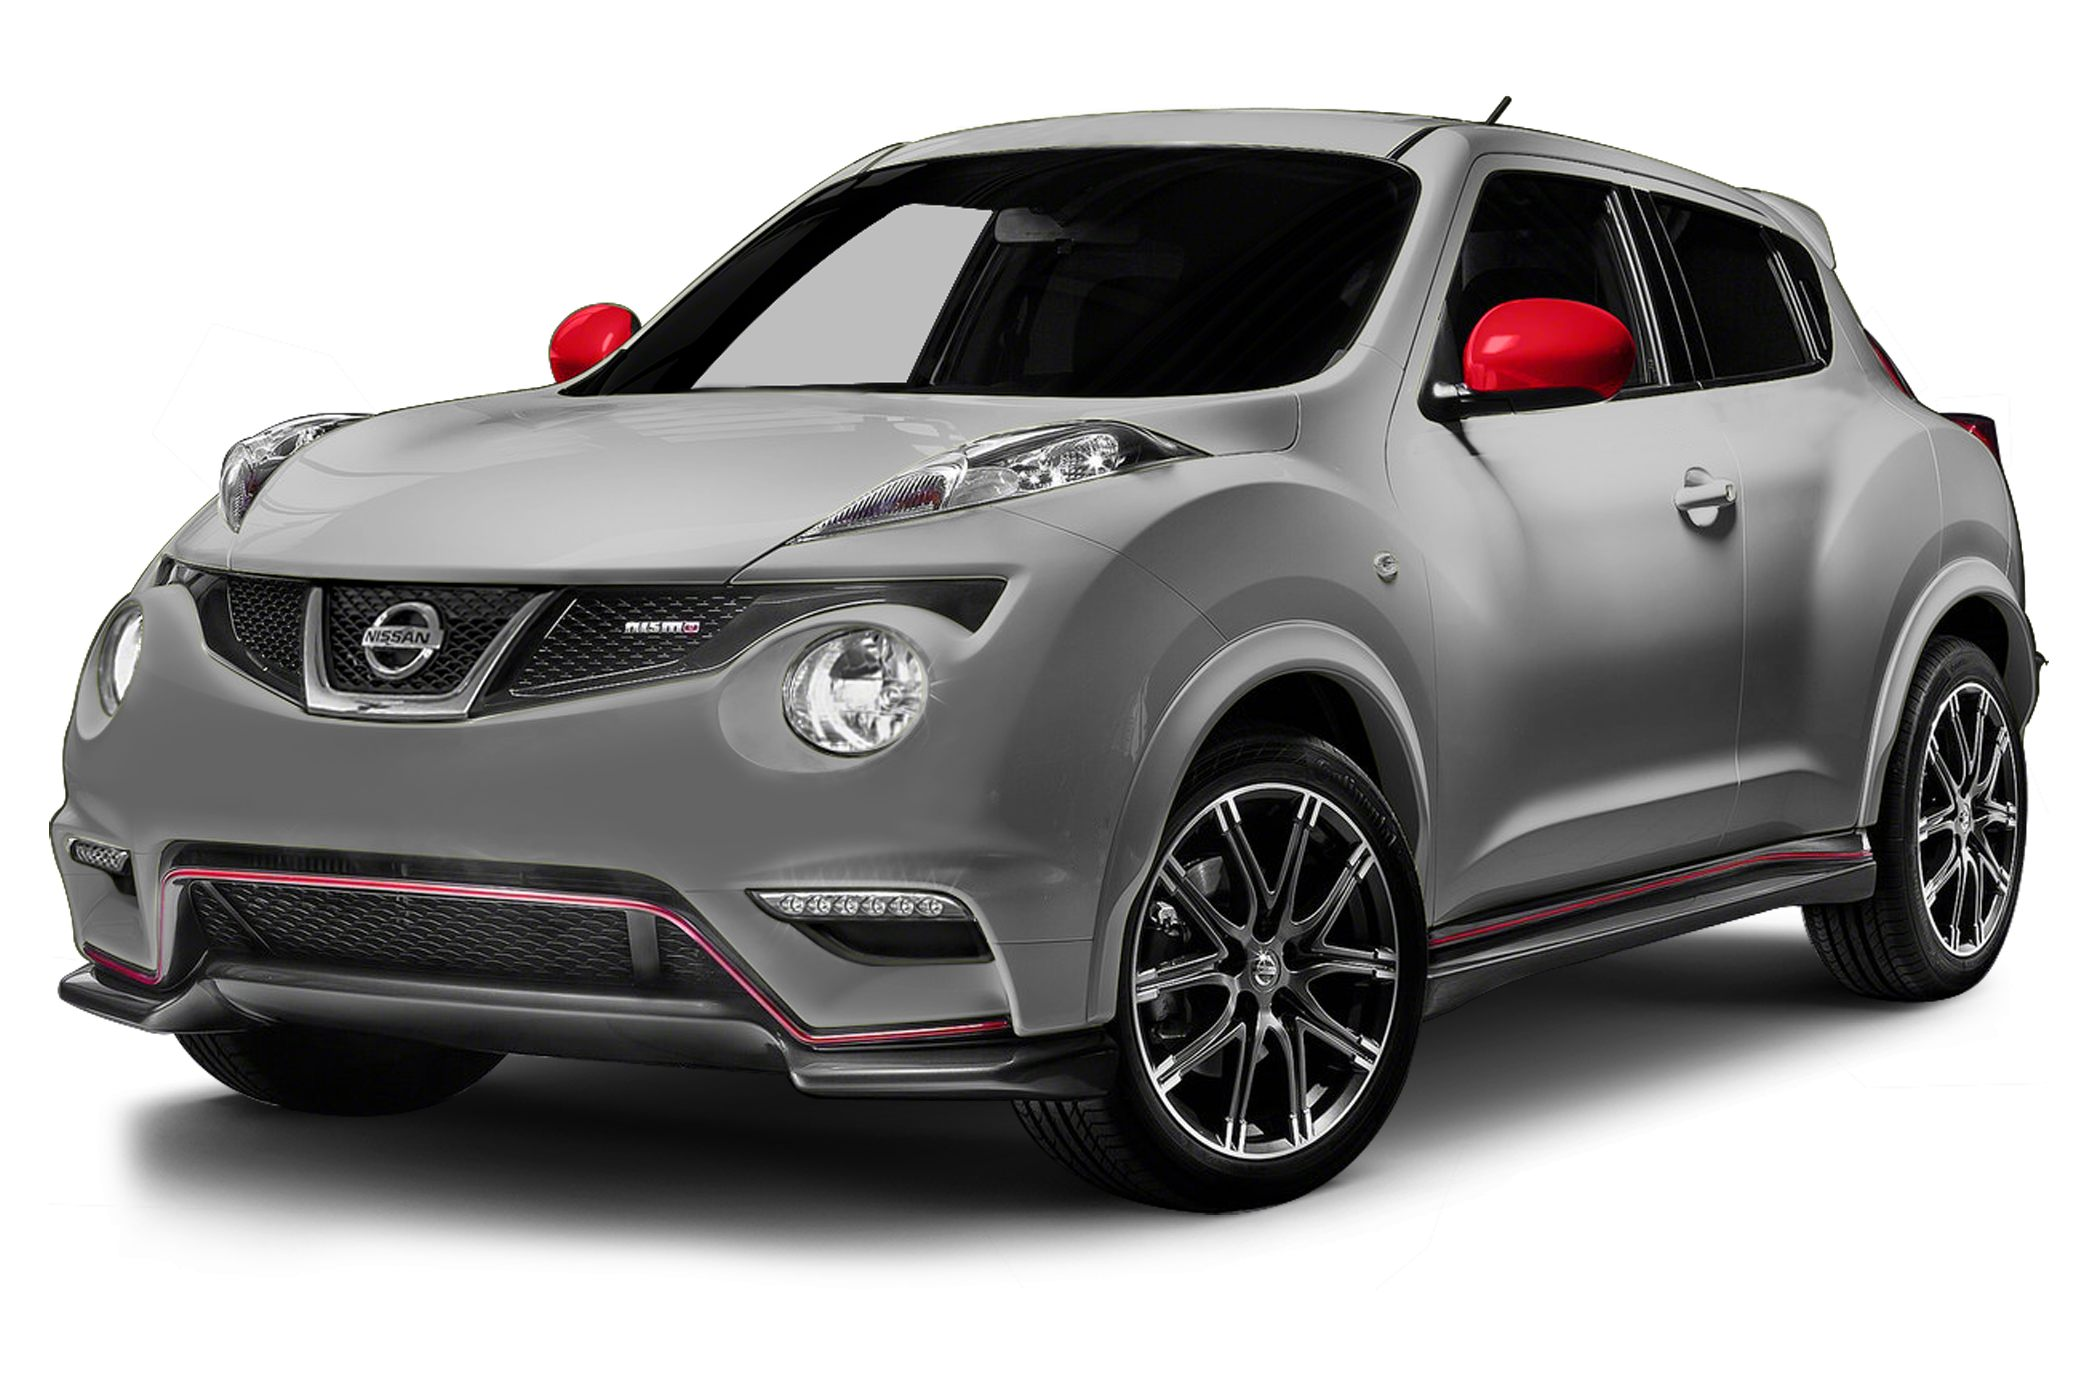 2014 Nissan Juke NISMO SUV for sale in Orlando for $28,750 with 0 miles